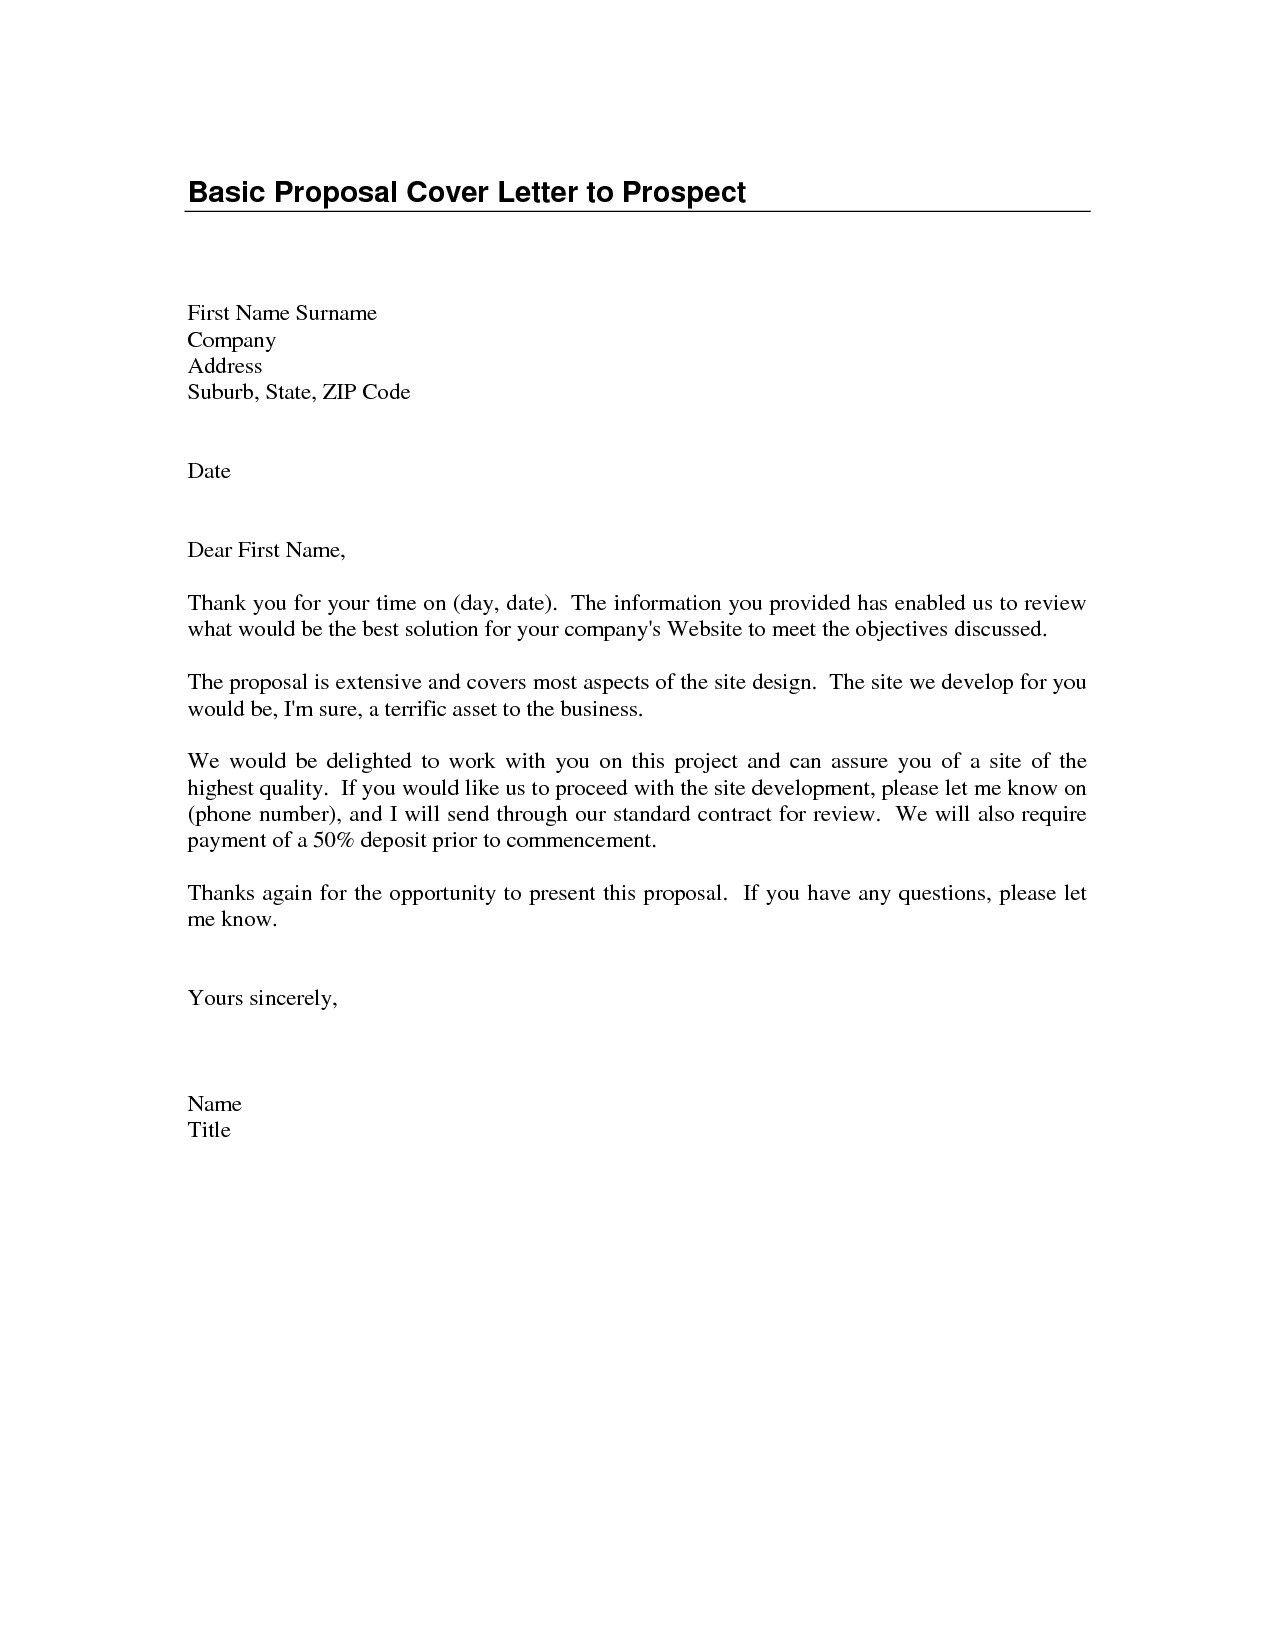 Business Proposal Acceptance Letter Template - Business Letter format Method Delivery Best Business Proposal